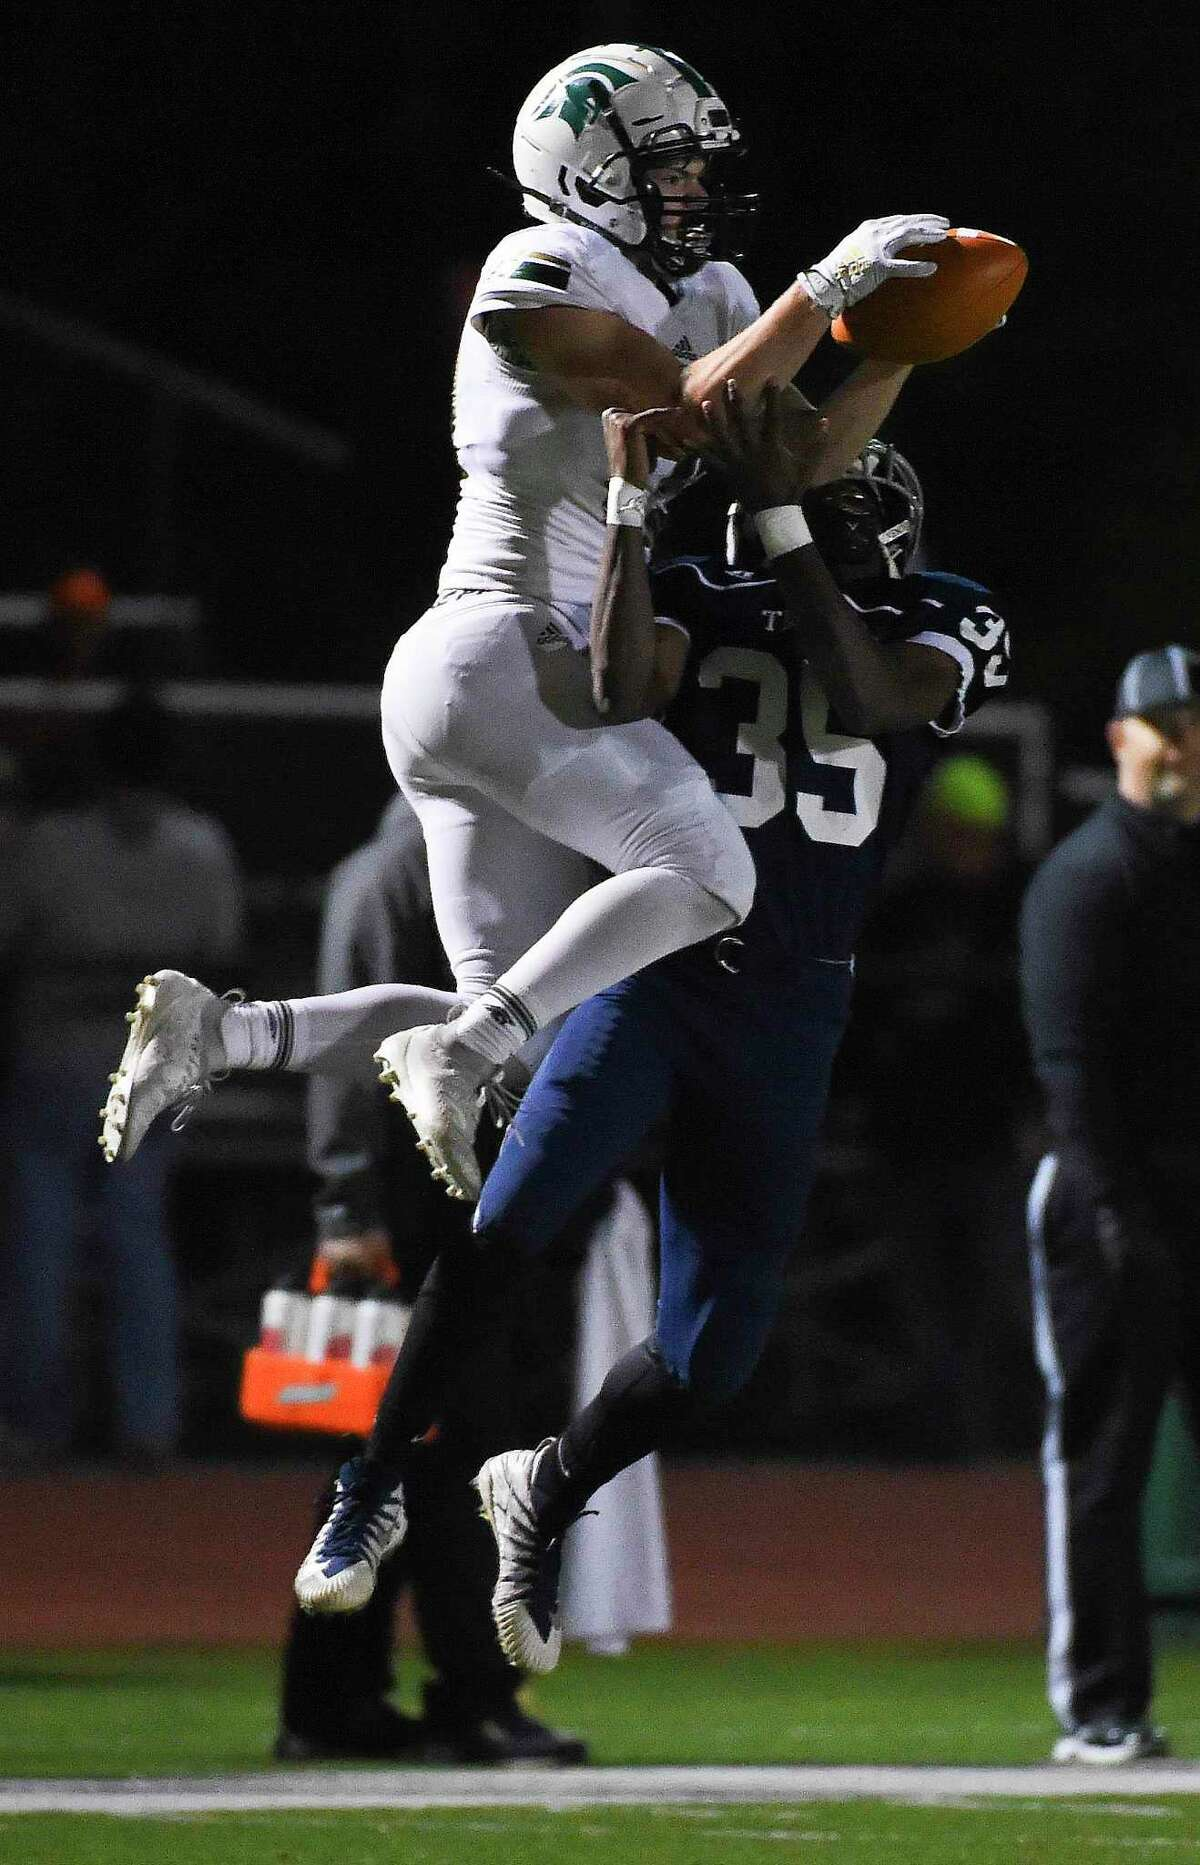 TWCA wide receiver Caleb Chappelle, left, catches a pass over TSD defensive back Broderick Johnson during the first half of a TAPPS Division III regional high school football playoff game, Friday, Nov. 22, 2019, in The Woodlands.